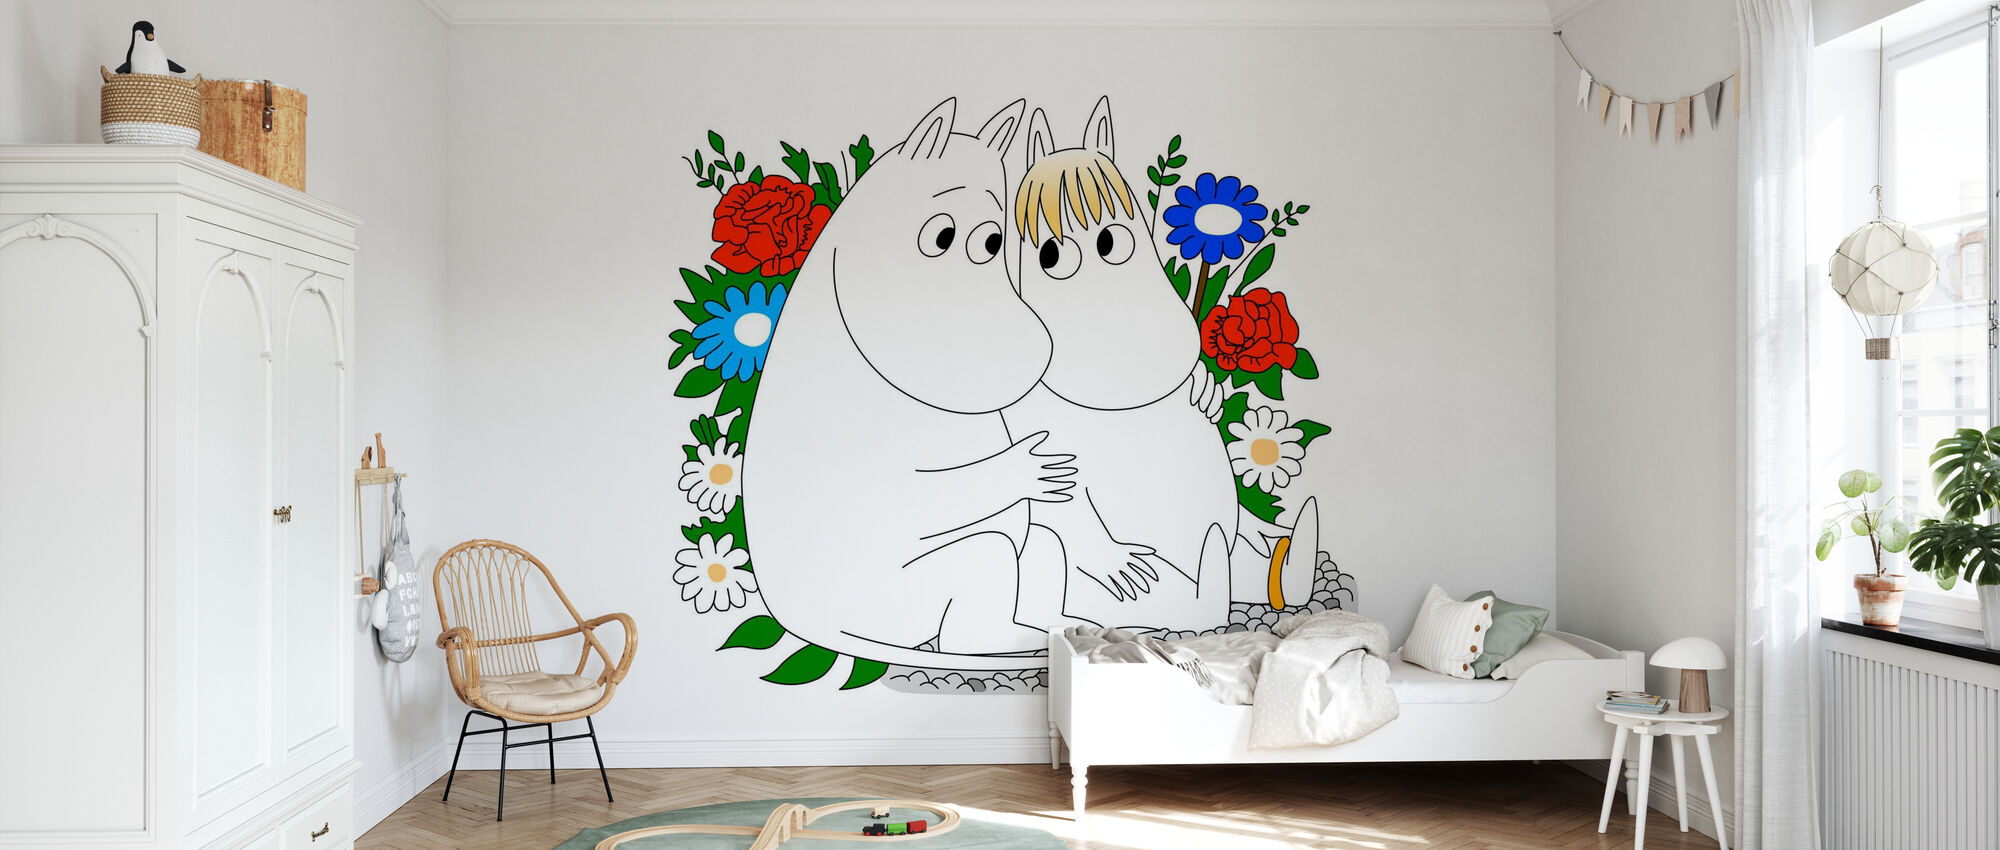 Moomin - Snorkmaiden - Wallpaper - Kids Room